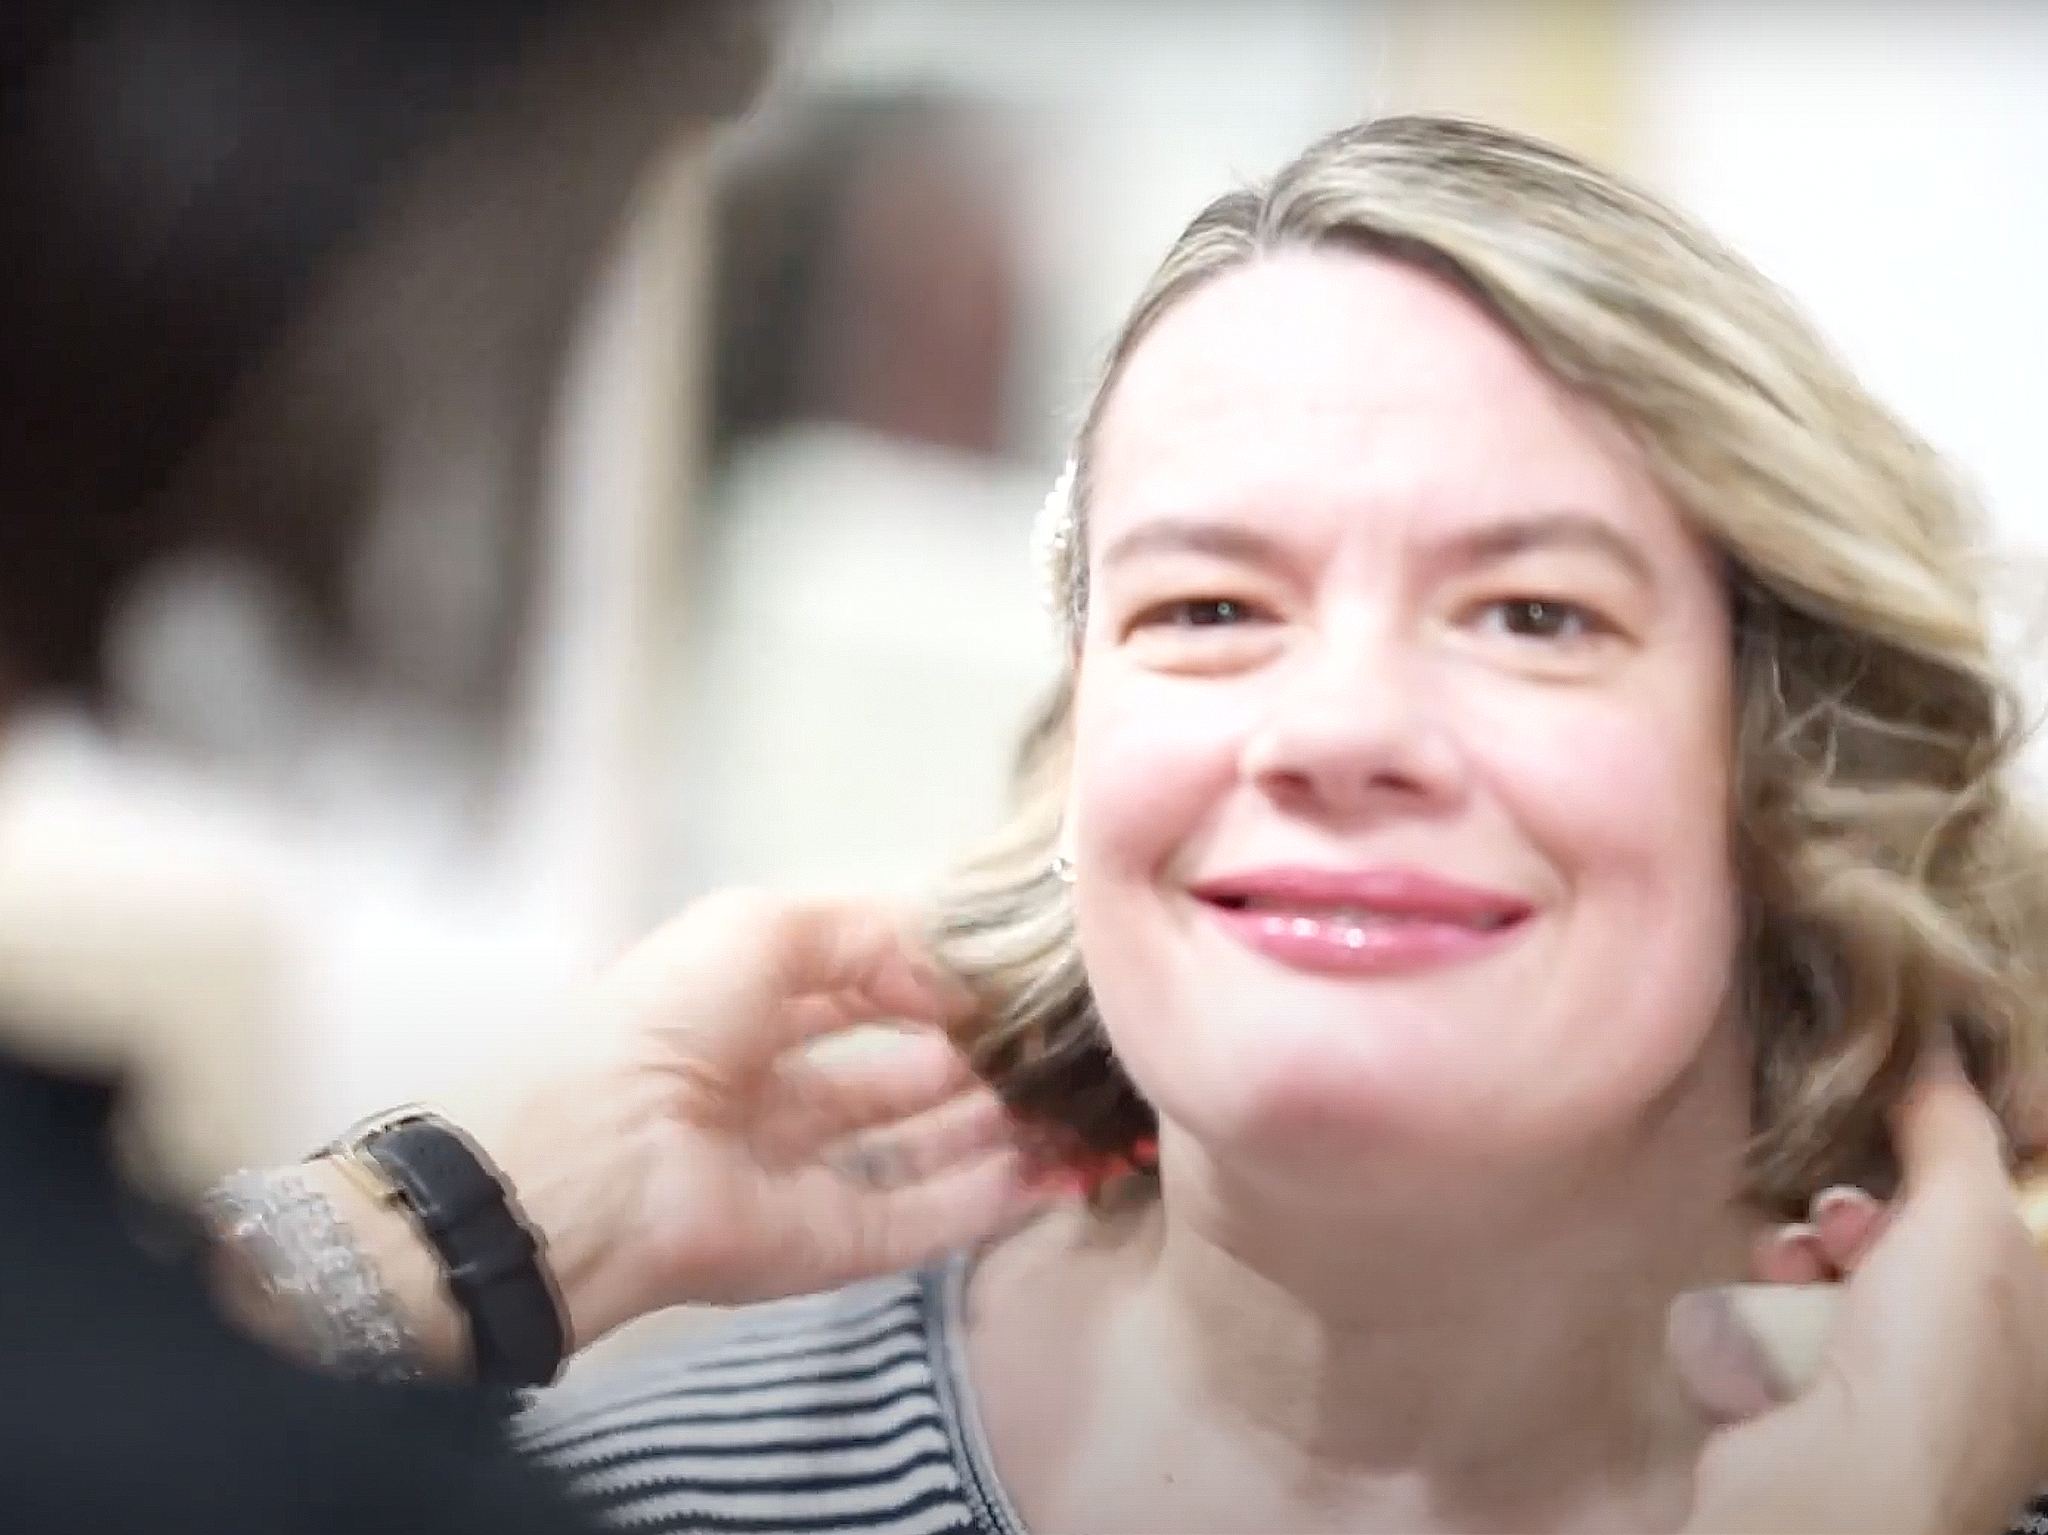 FLoK by Bekim and L'Oreal: Inclusive Beauty Trailblazers